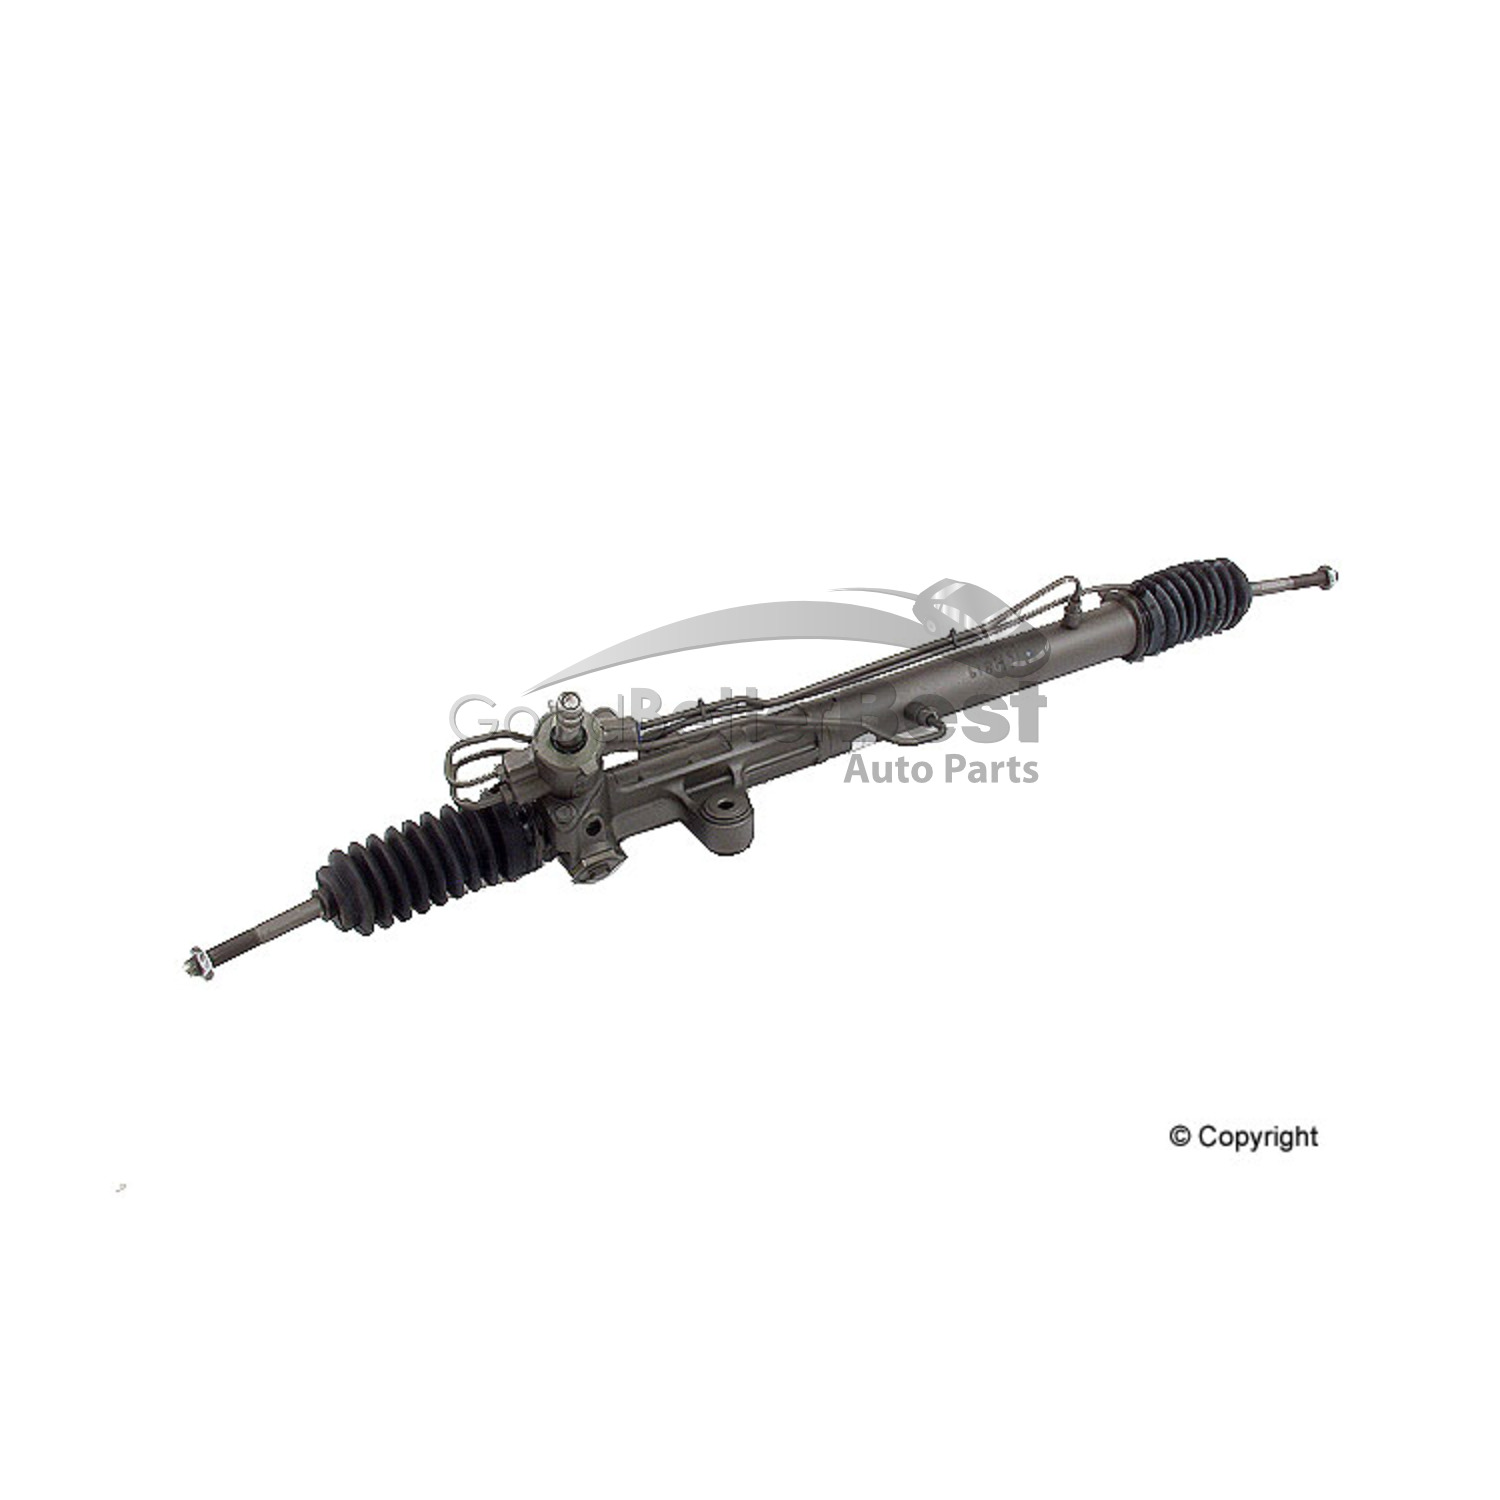 One Maval Rack And Pinion Assembly M Sv4a01 For